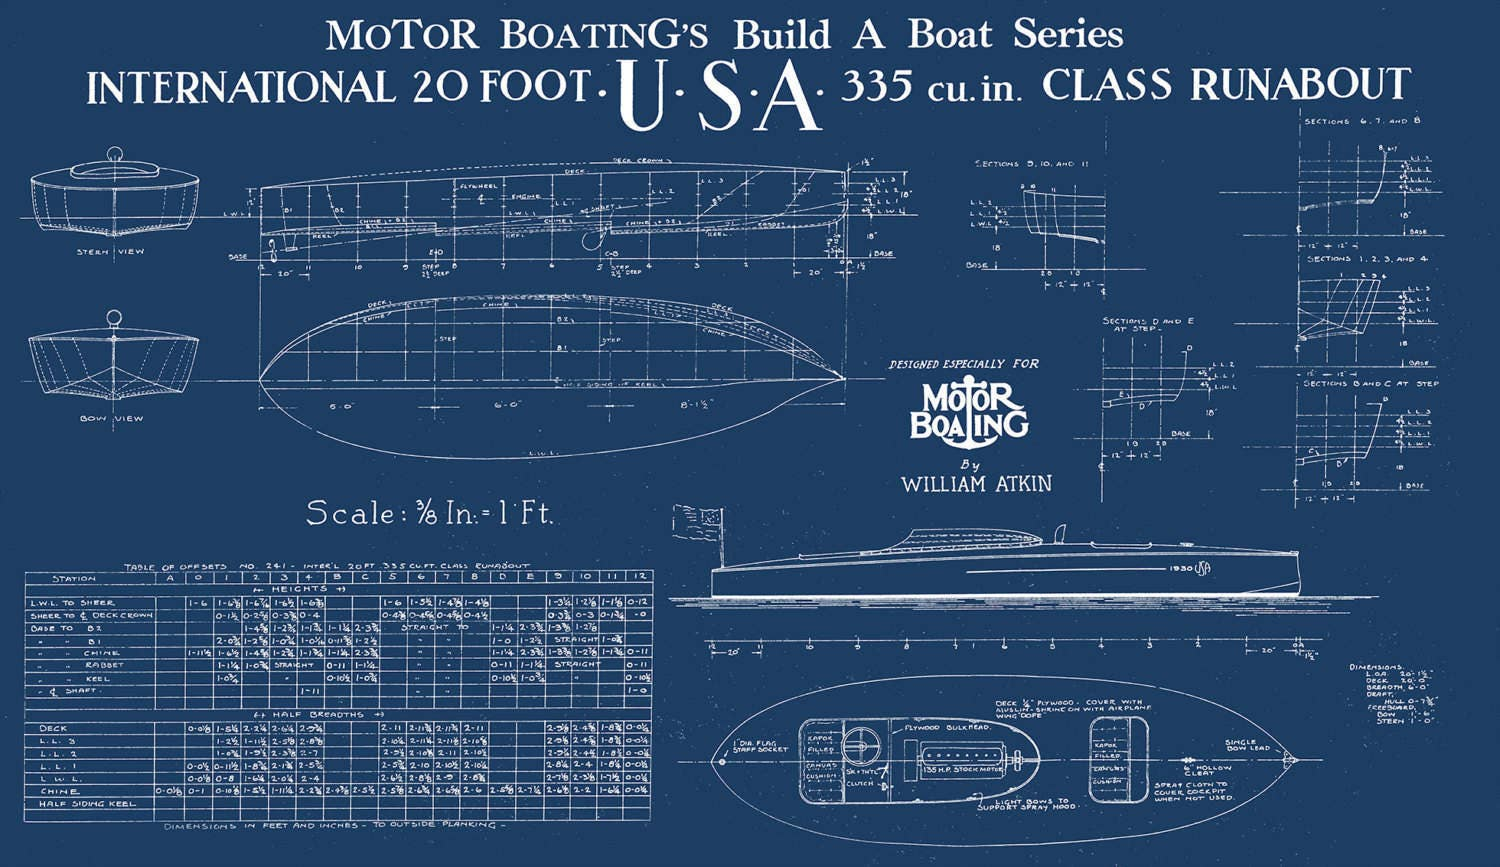 Vintage Print Of Usa Runabout Diagram Line Drawing Schematic Blueprint On Matte Paper  Photo